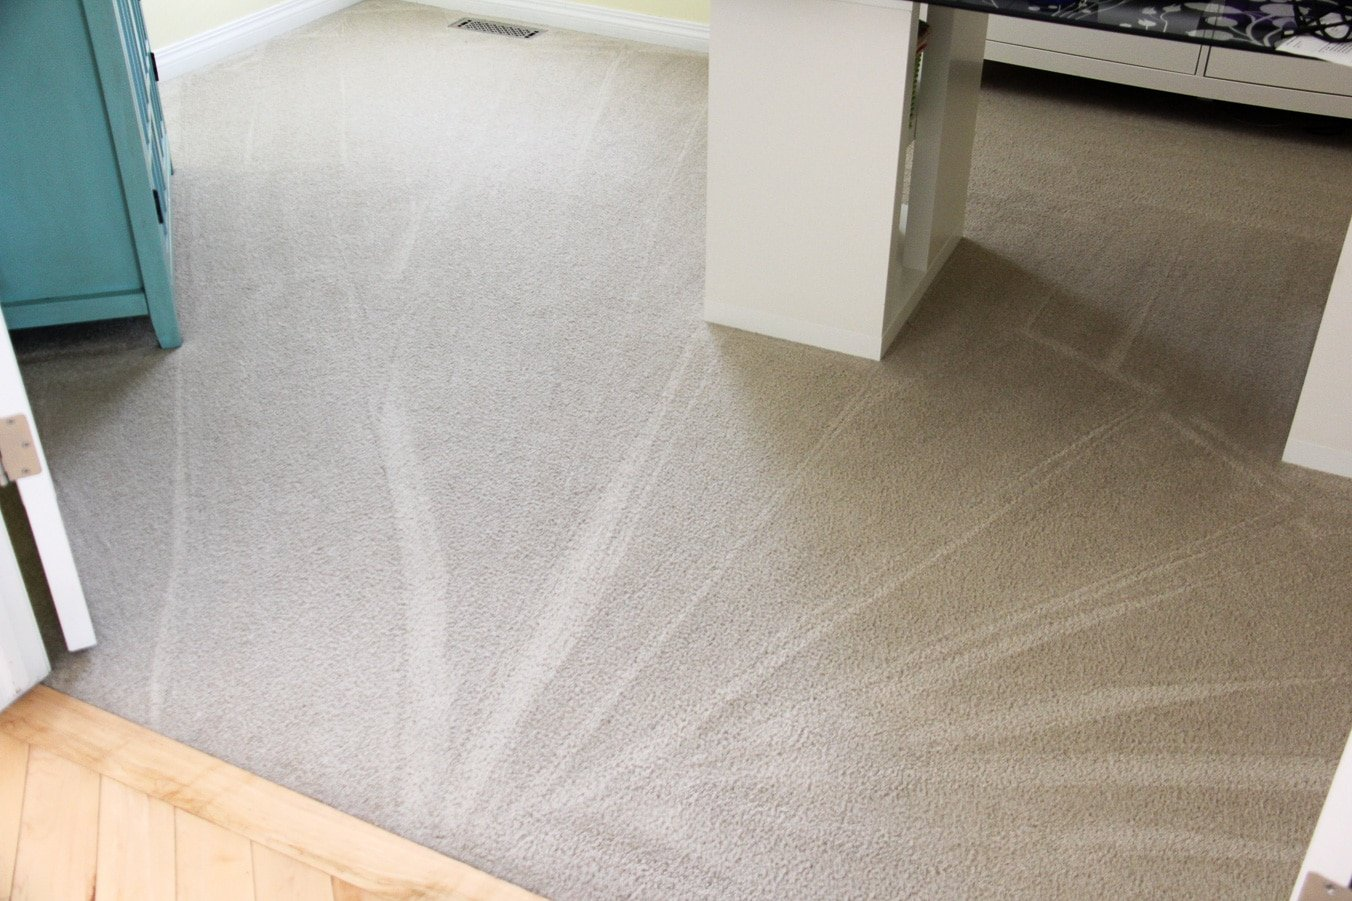 Product Review Hoover Power Scrub Elite Pet Carpet Cleaner A Pretty Life In The Suburbs